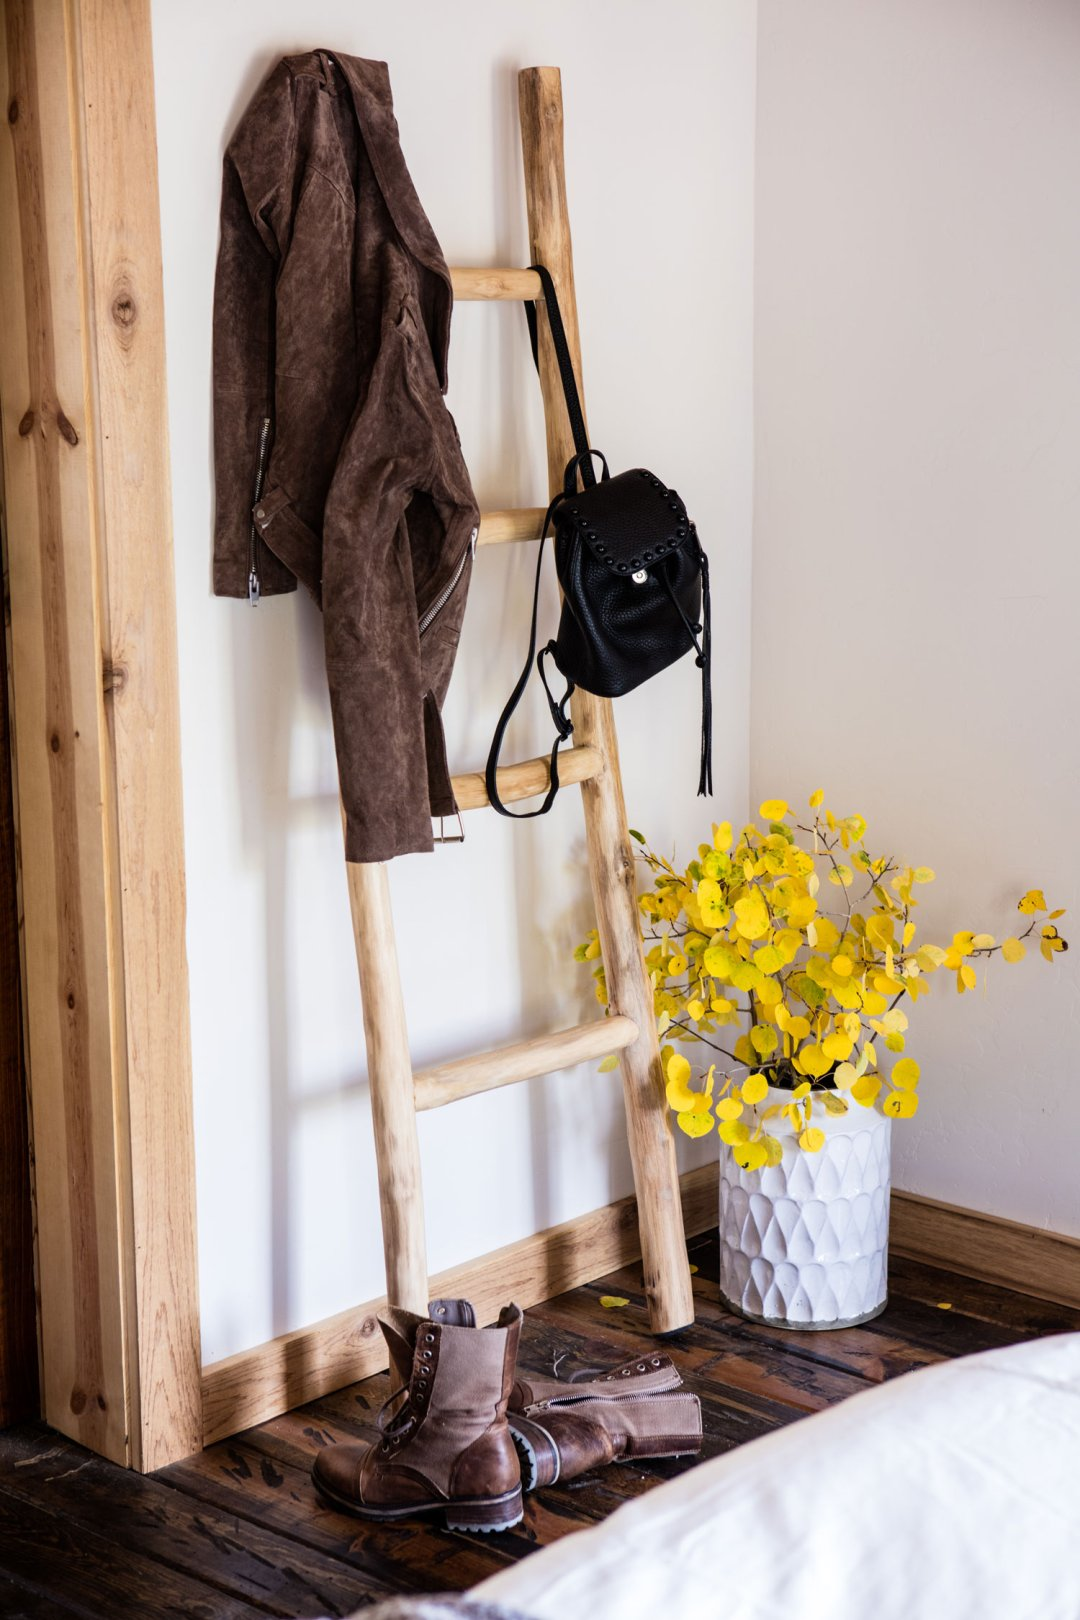 A suede jacket and small backpack hanging ona decorative wooden ladder next to a vase of yellow flowers on the floor